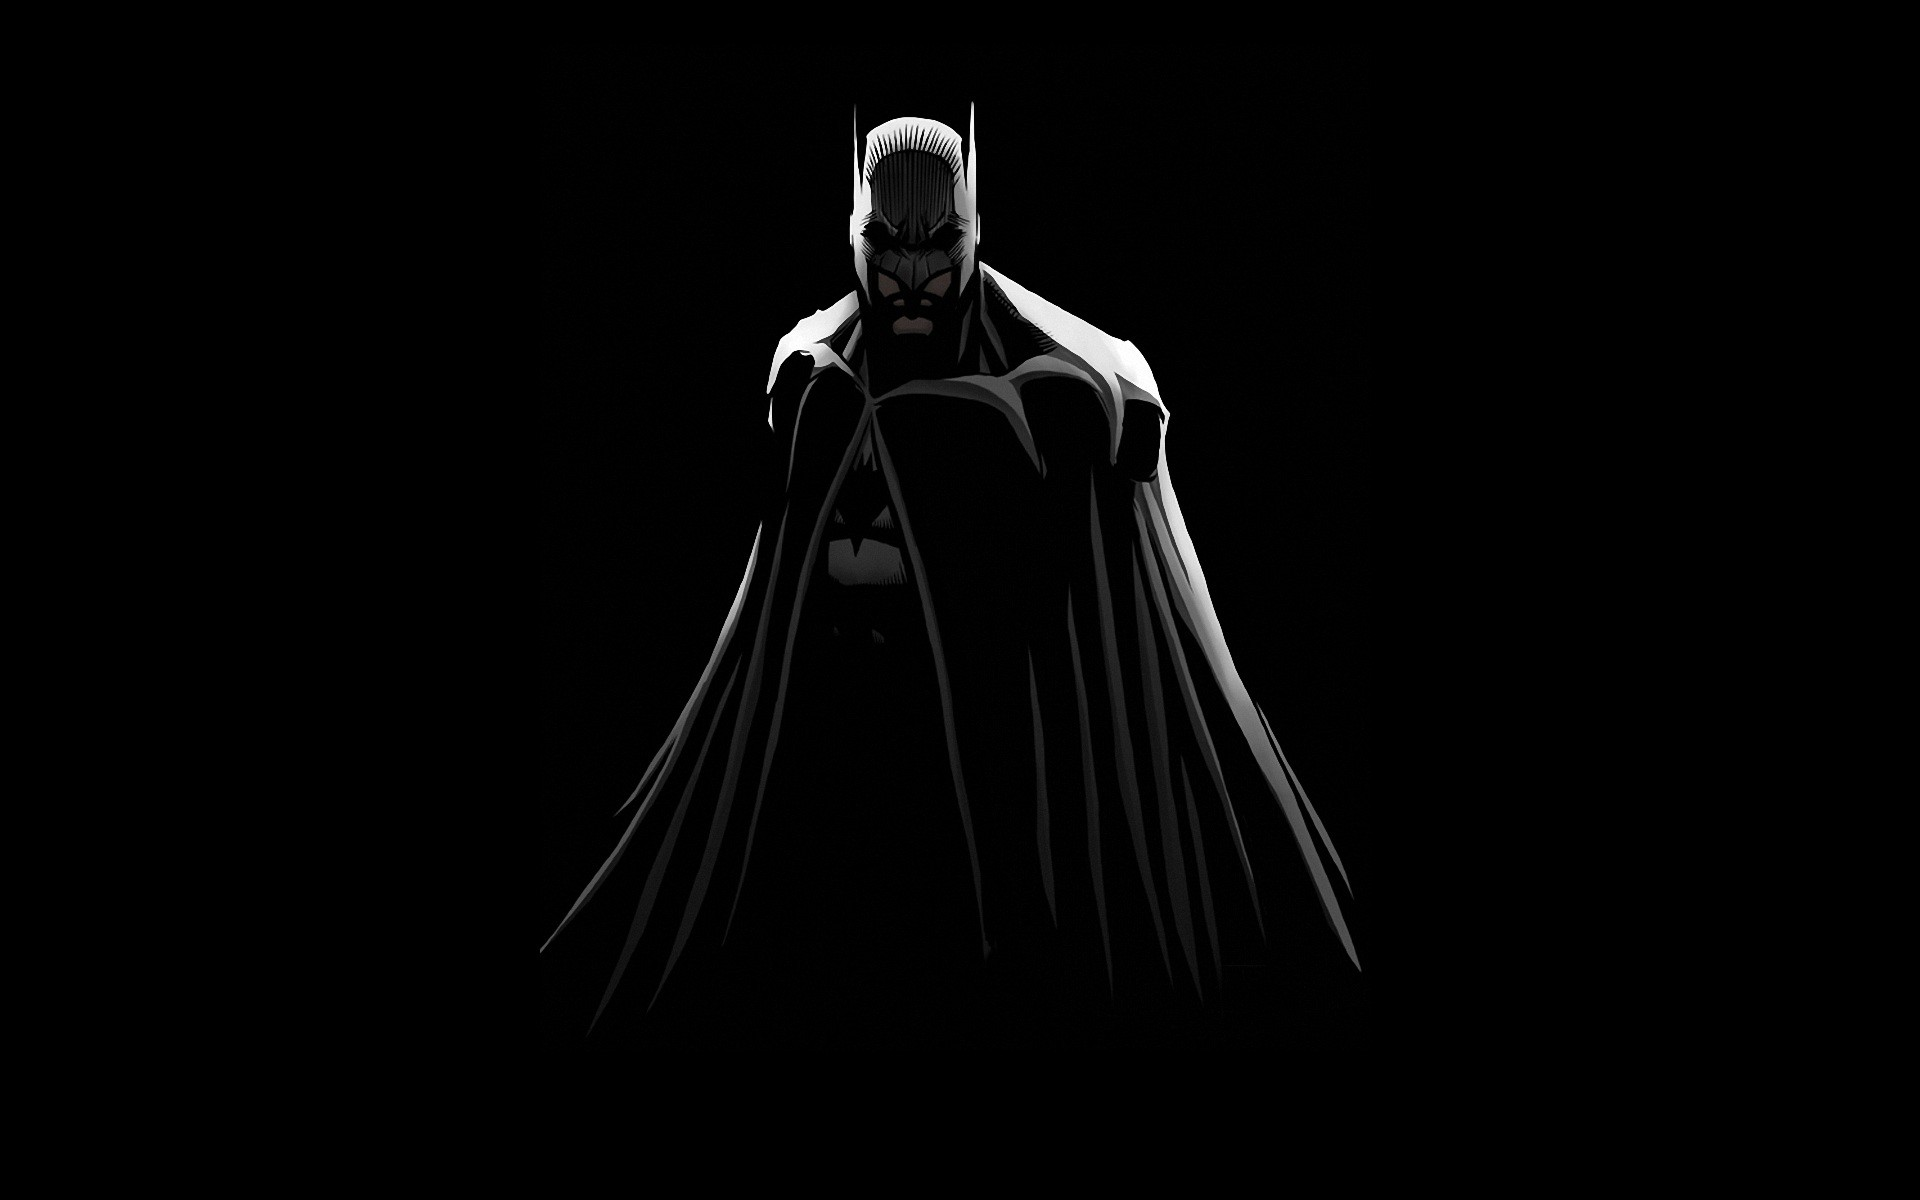 Batman Black Background Dc Comics